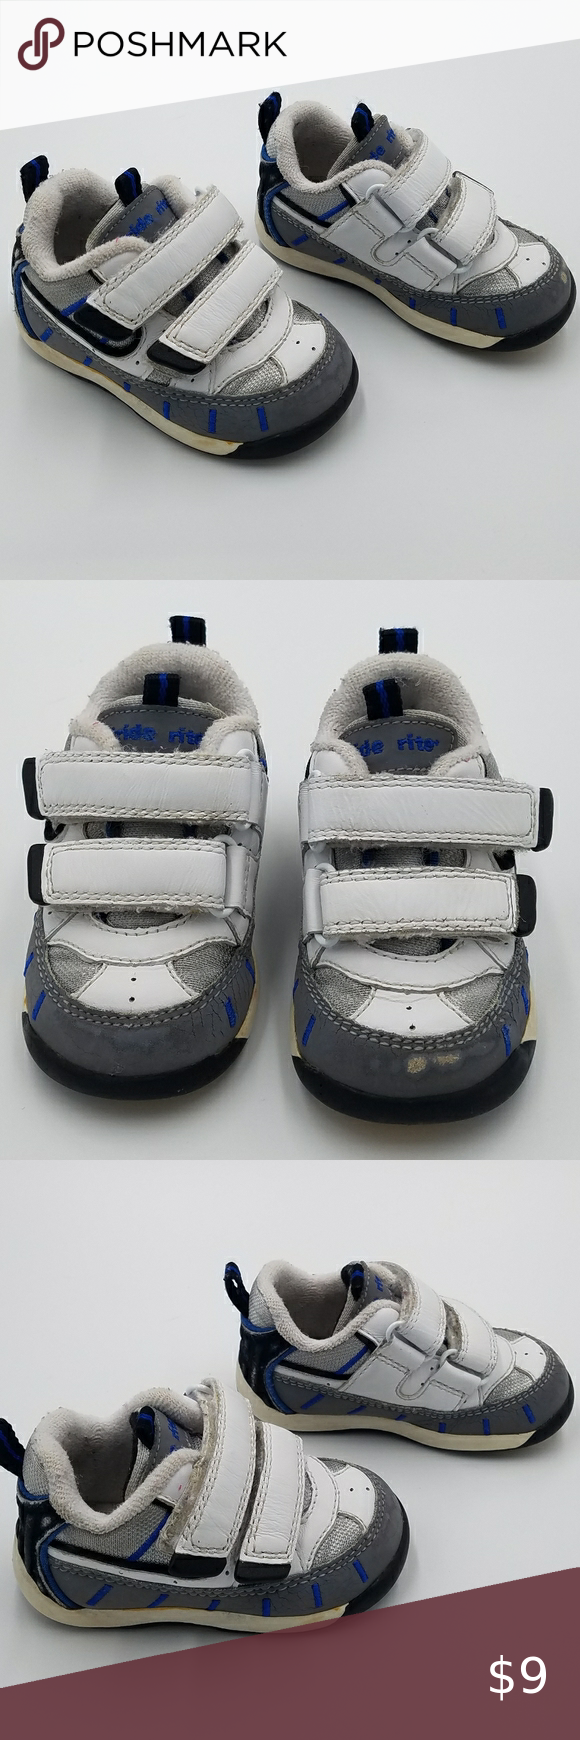 Stride Rite Velcro Sneakers Shoes 4T in